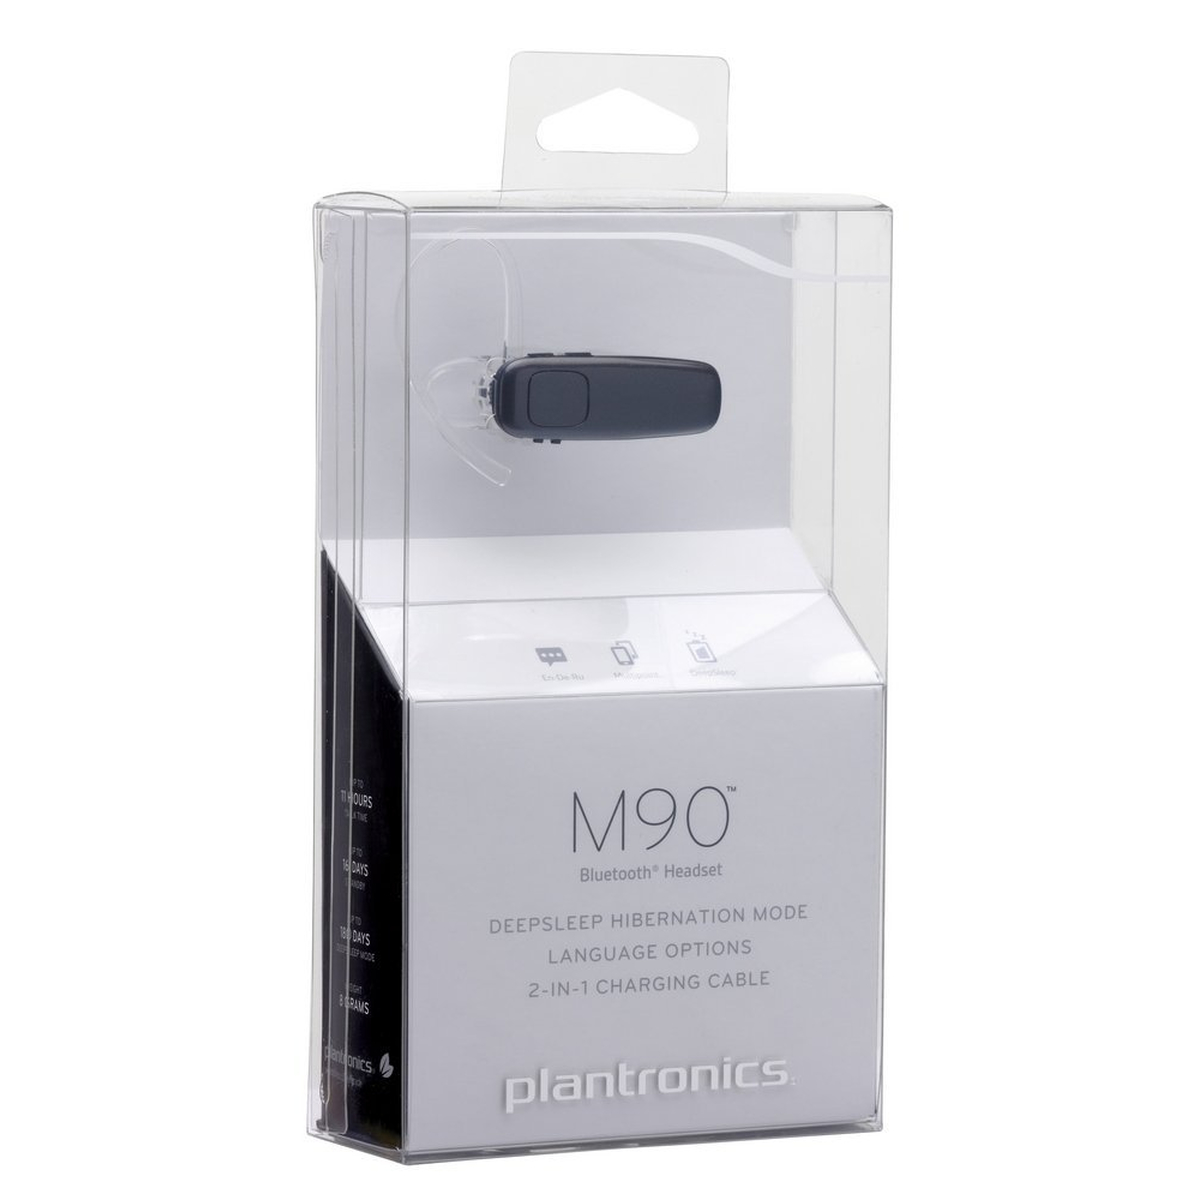 Plantronics M90 Bluetooth Headset #gut